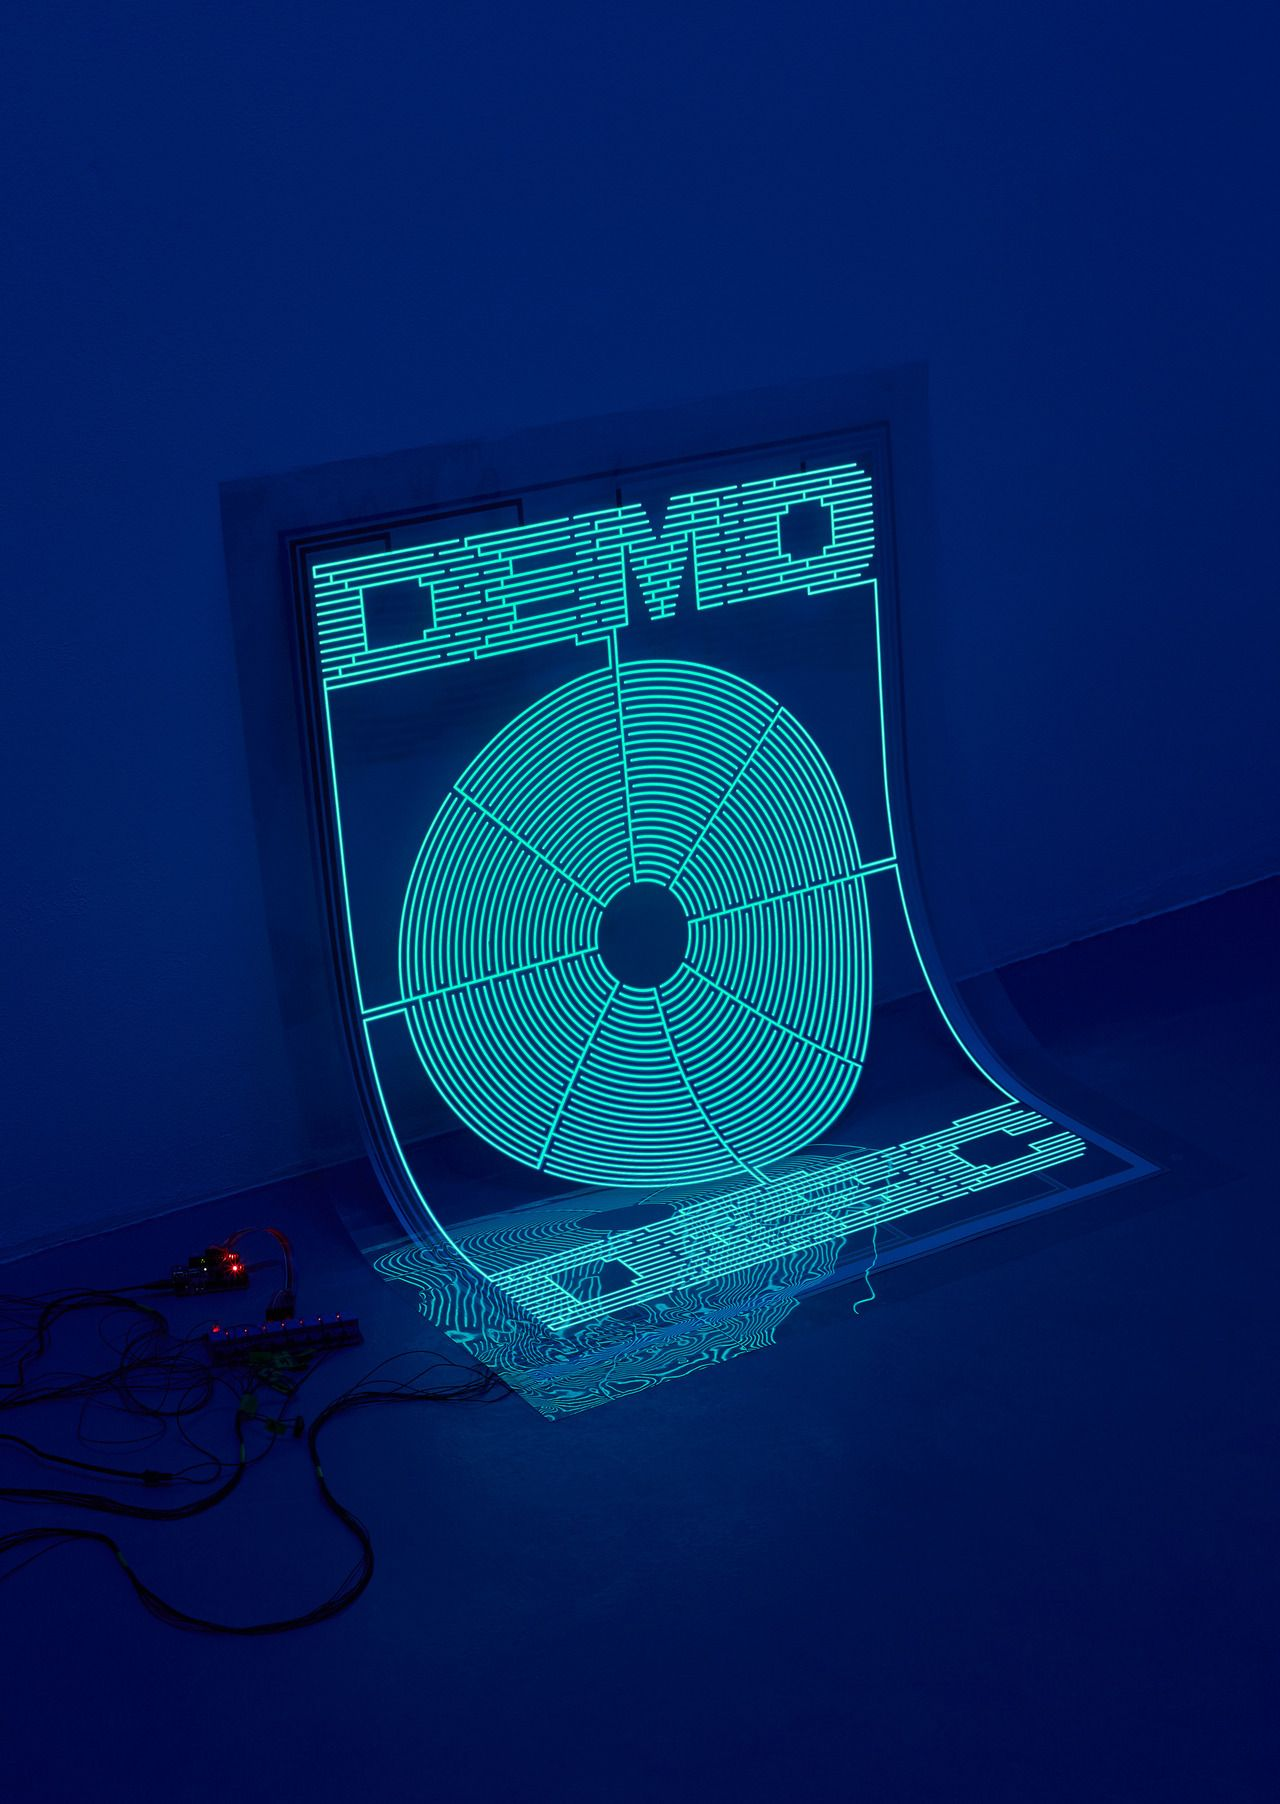 Demo Disc, an electroluminescent animated poster (with